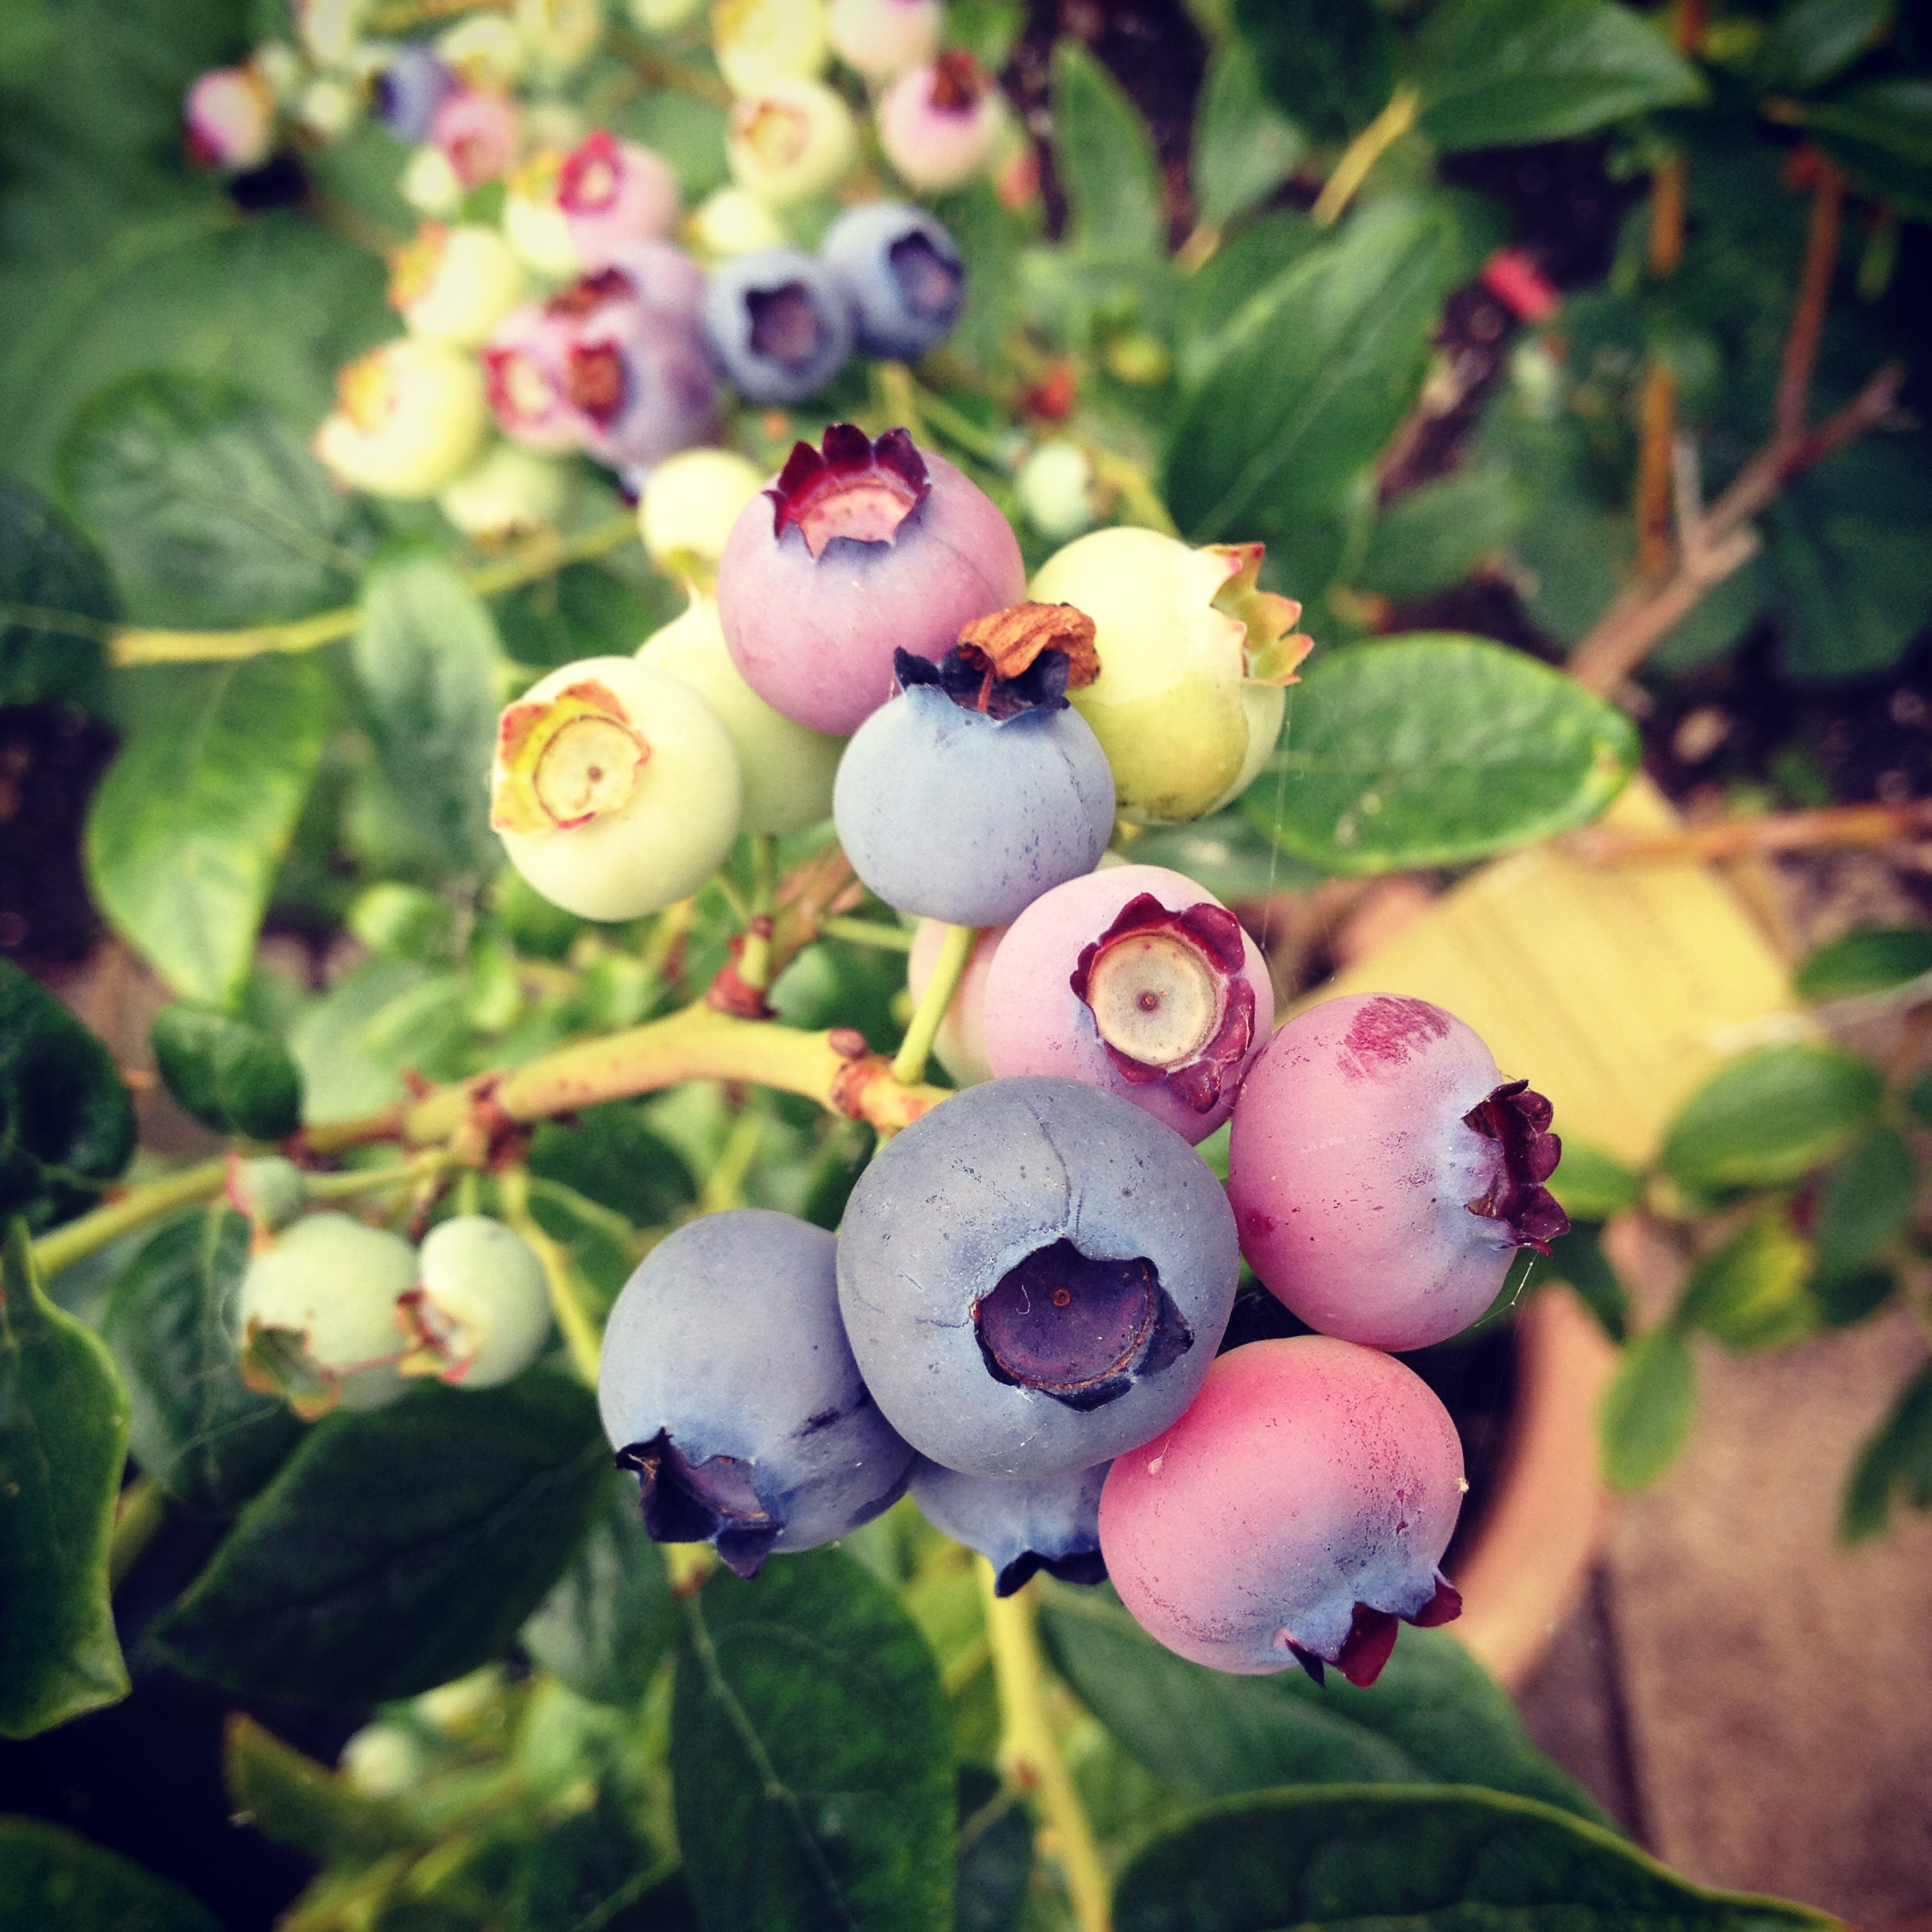 homegrown blueberries look beautiful!